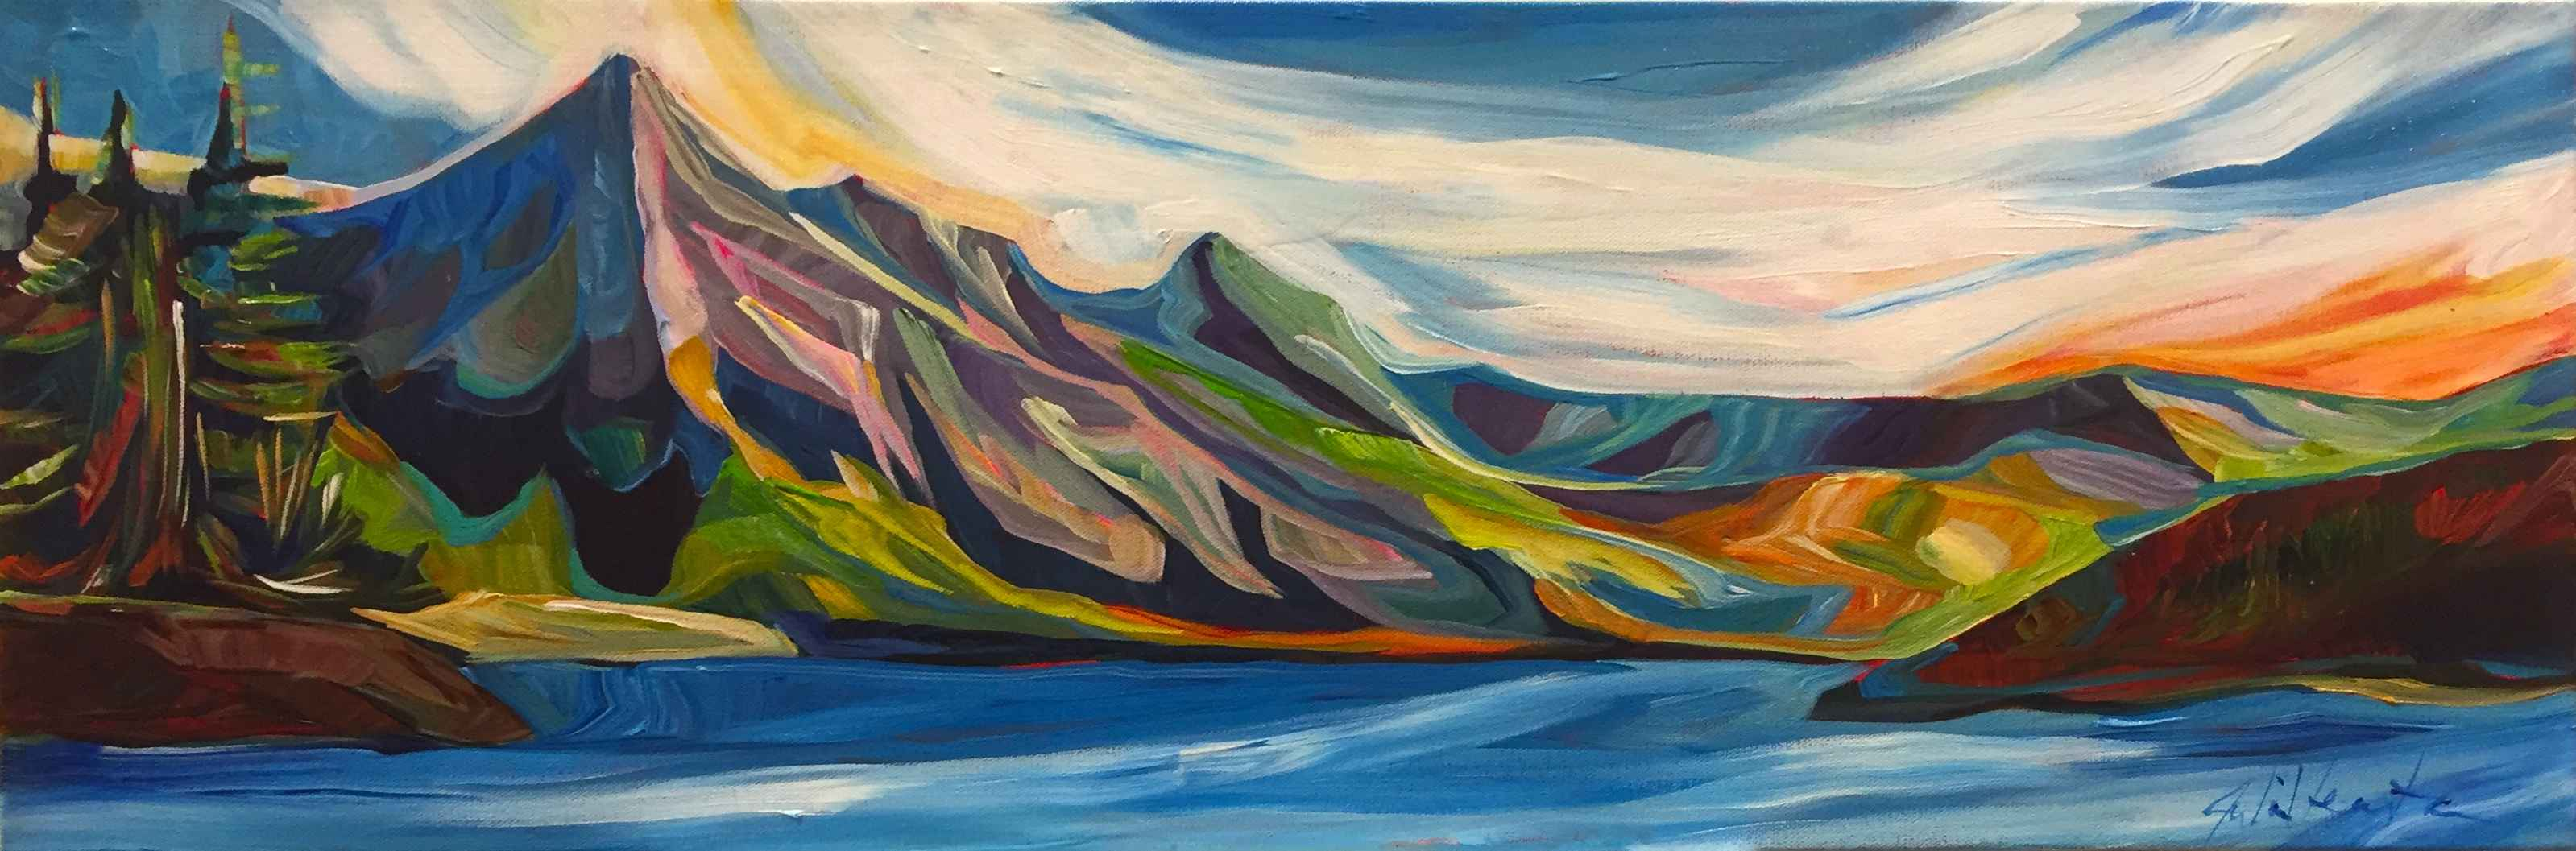 Mountain Sunset by  Julia Veenstra - Masterpiece Online